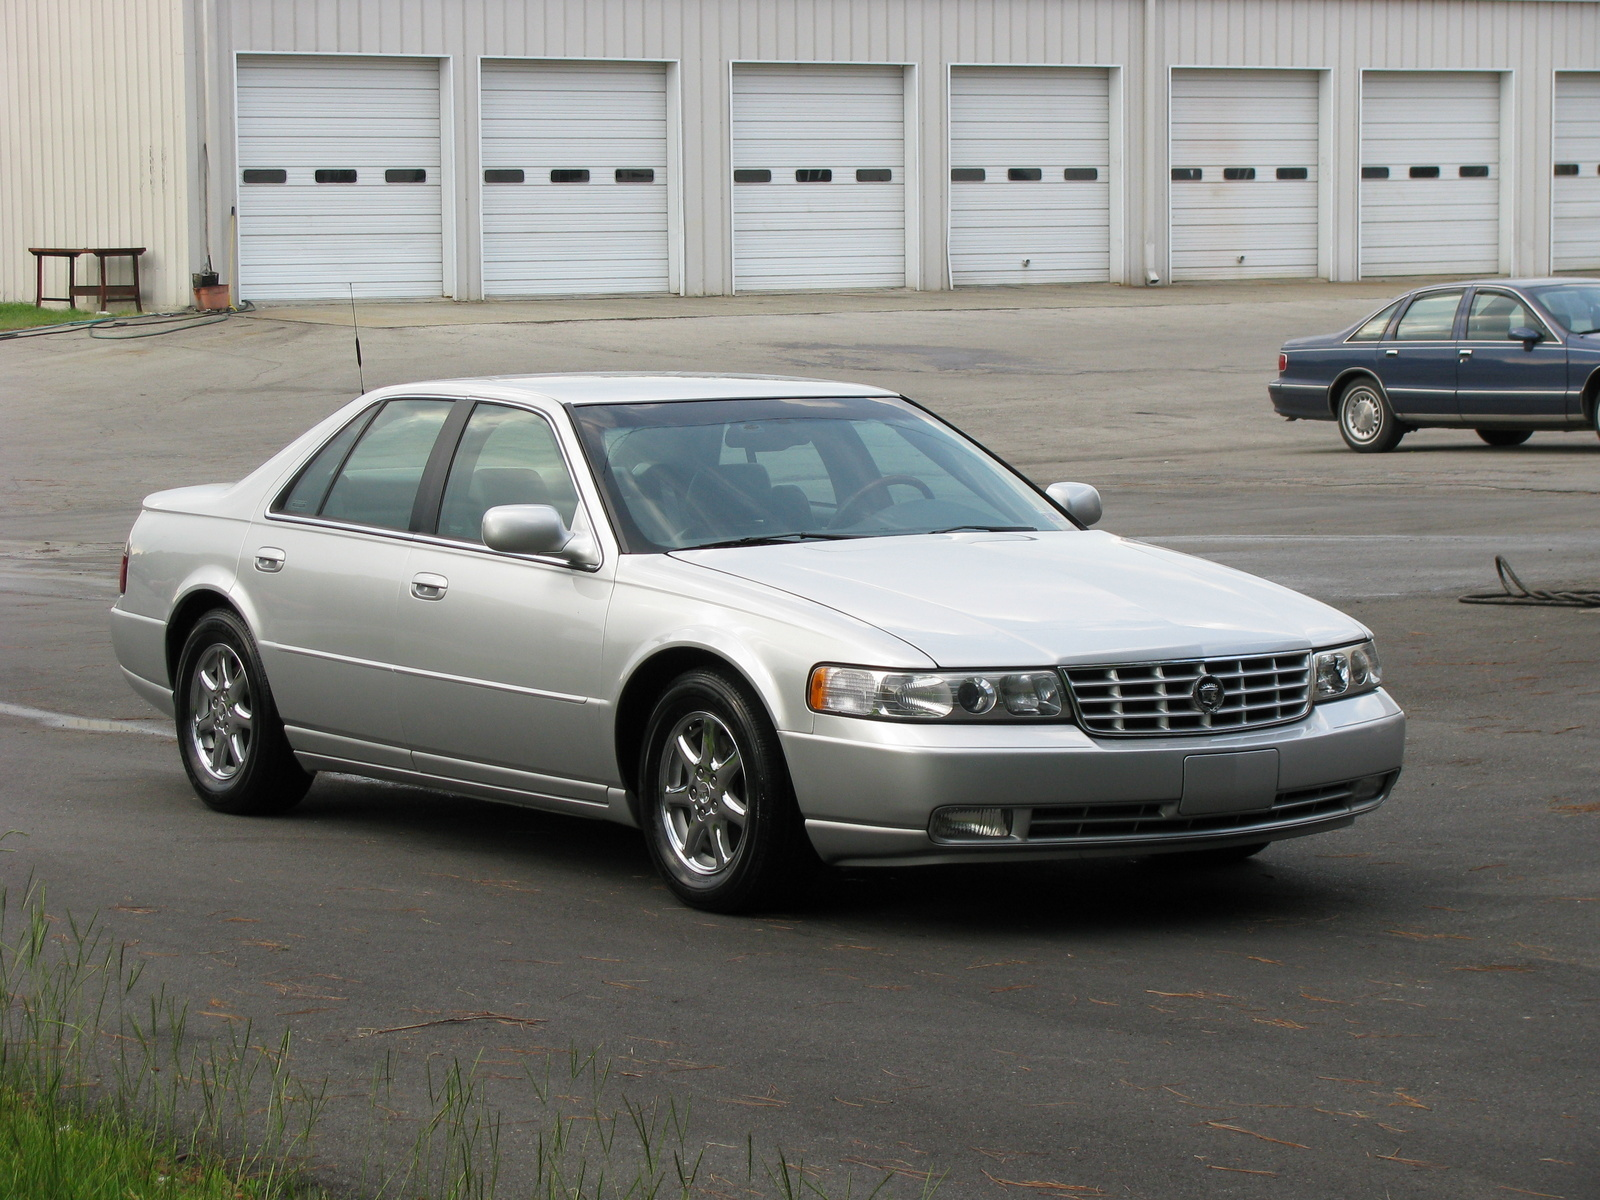 hight resolution of 2000 cadillac seville overview